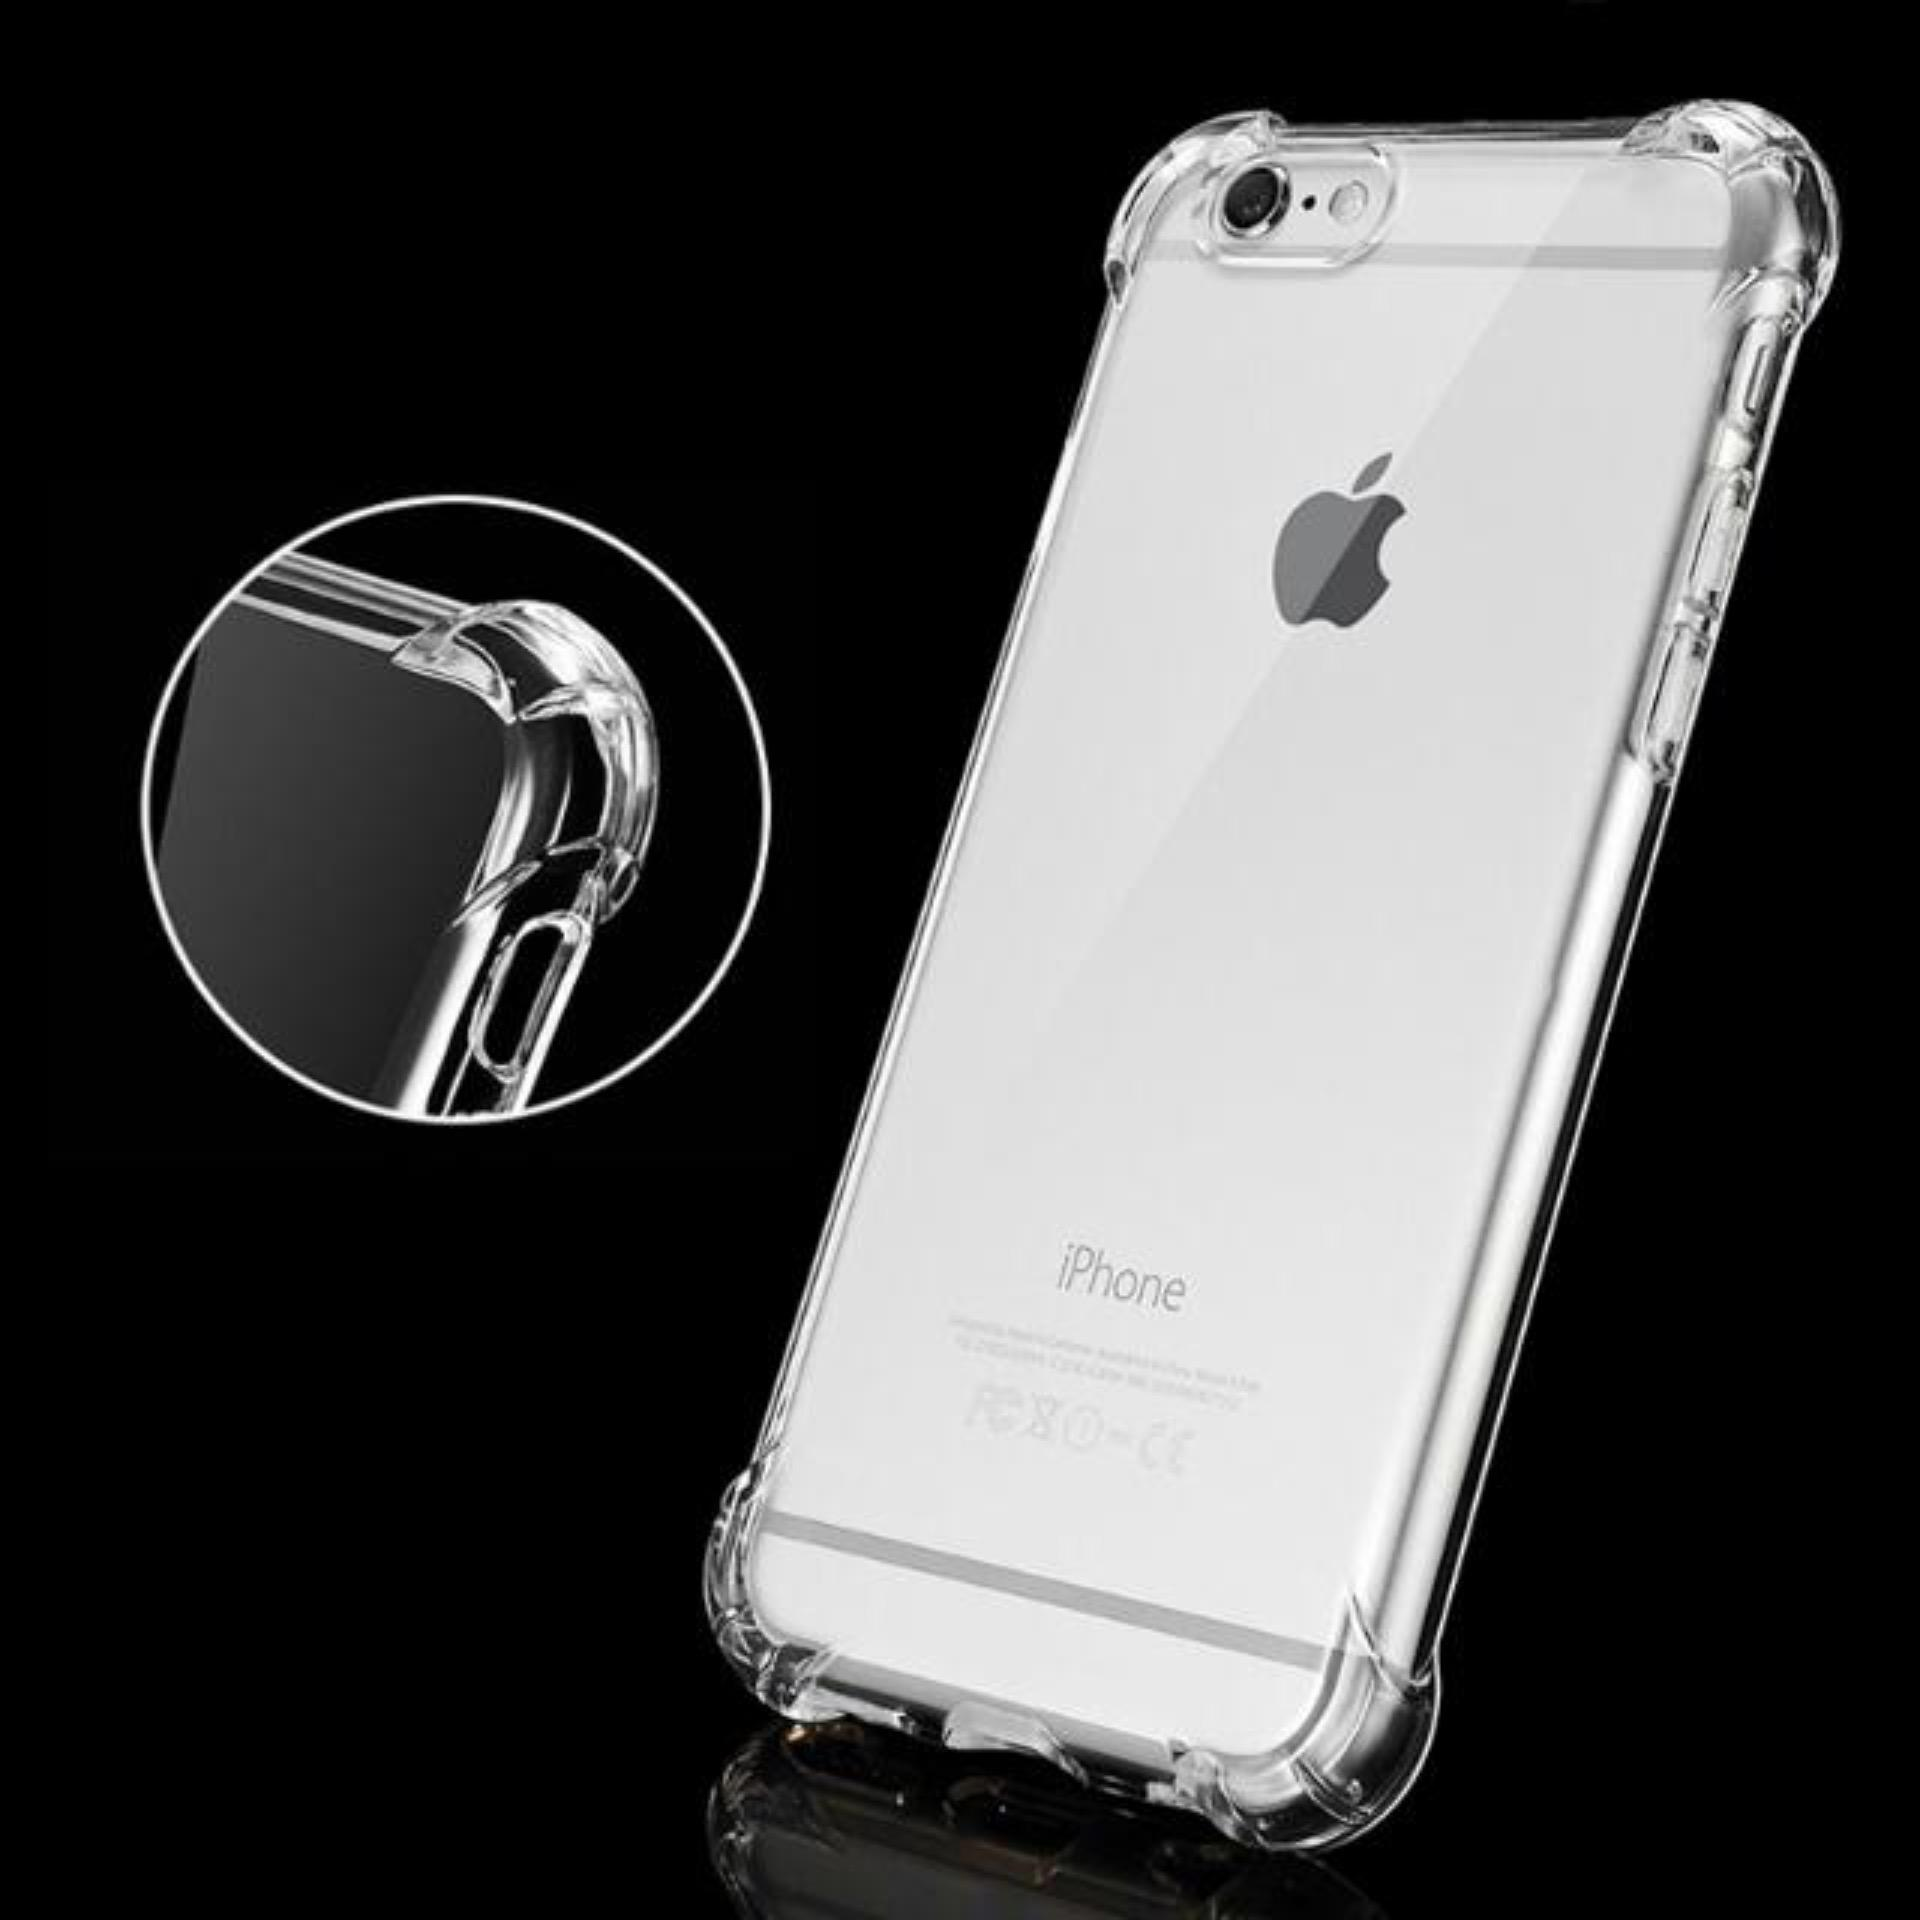 High Quality 360 Degree Full Protect Back Cover Protective Shell Soft Phone Case for iPhone 7 PLUS /8 PLUS Smartphone